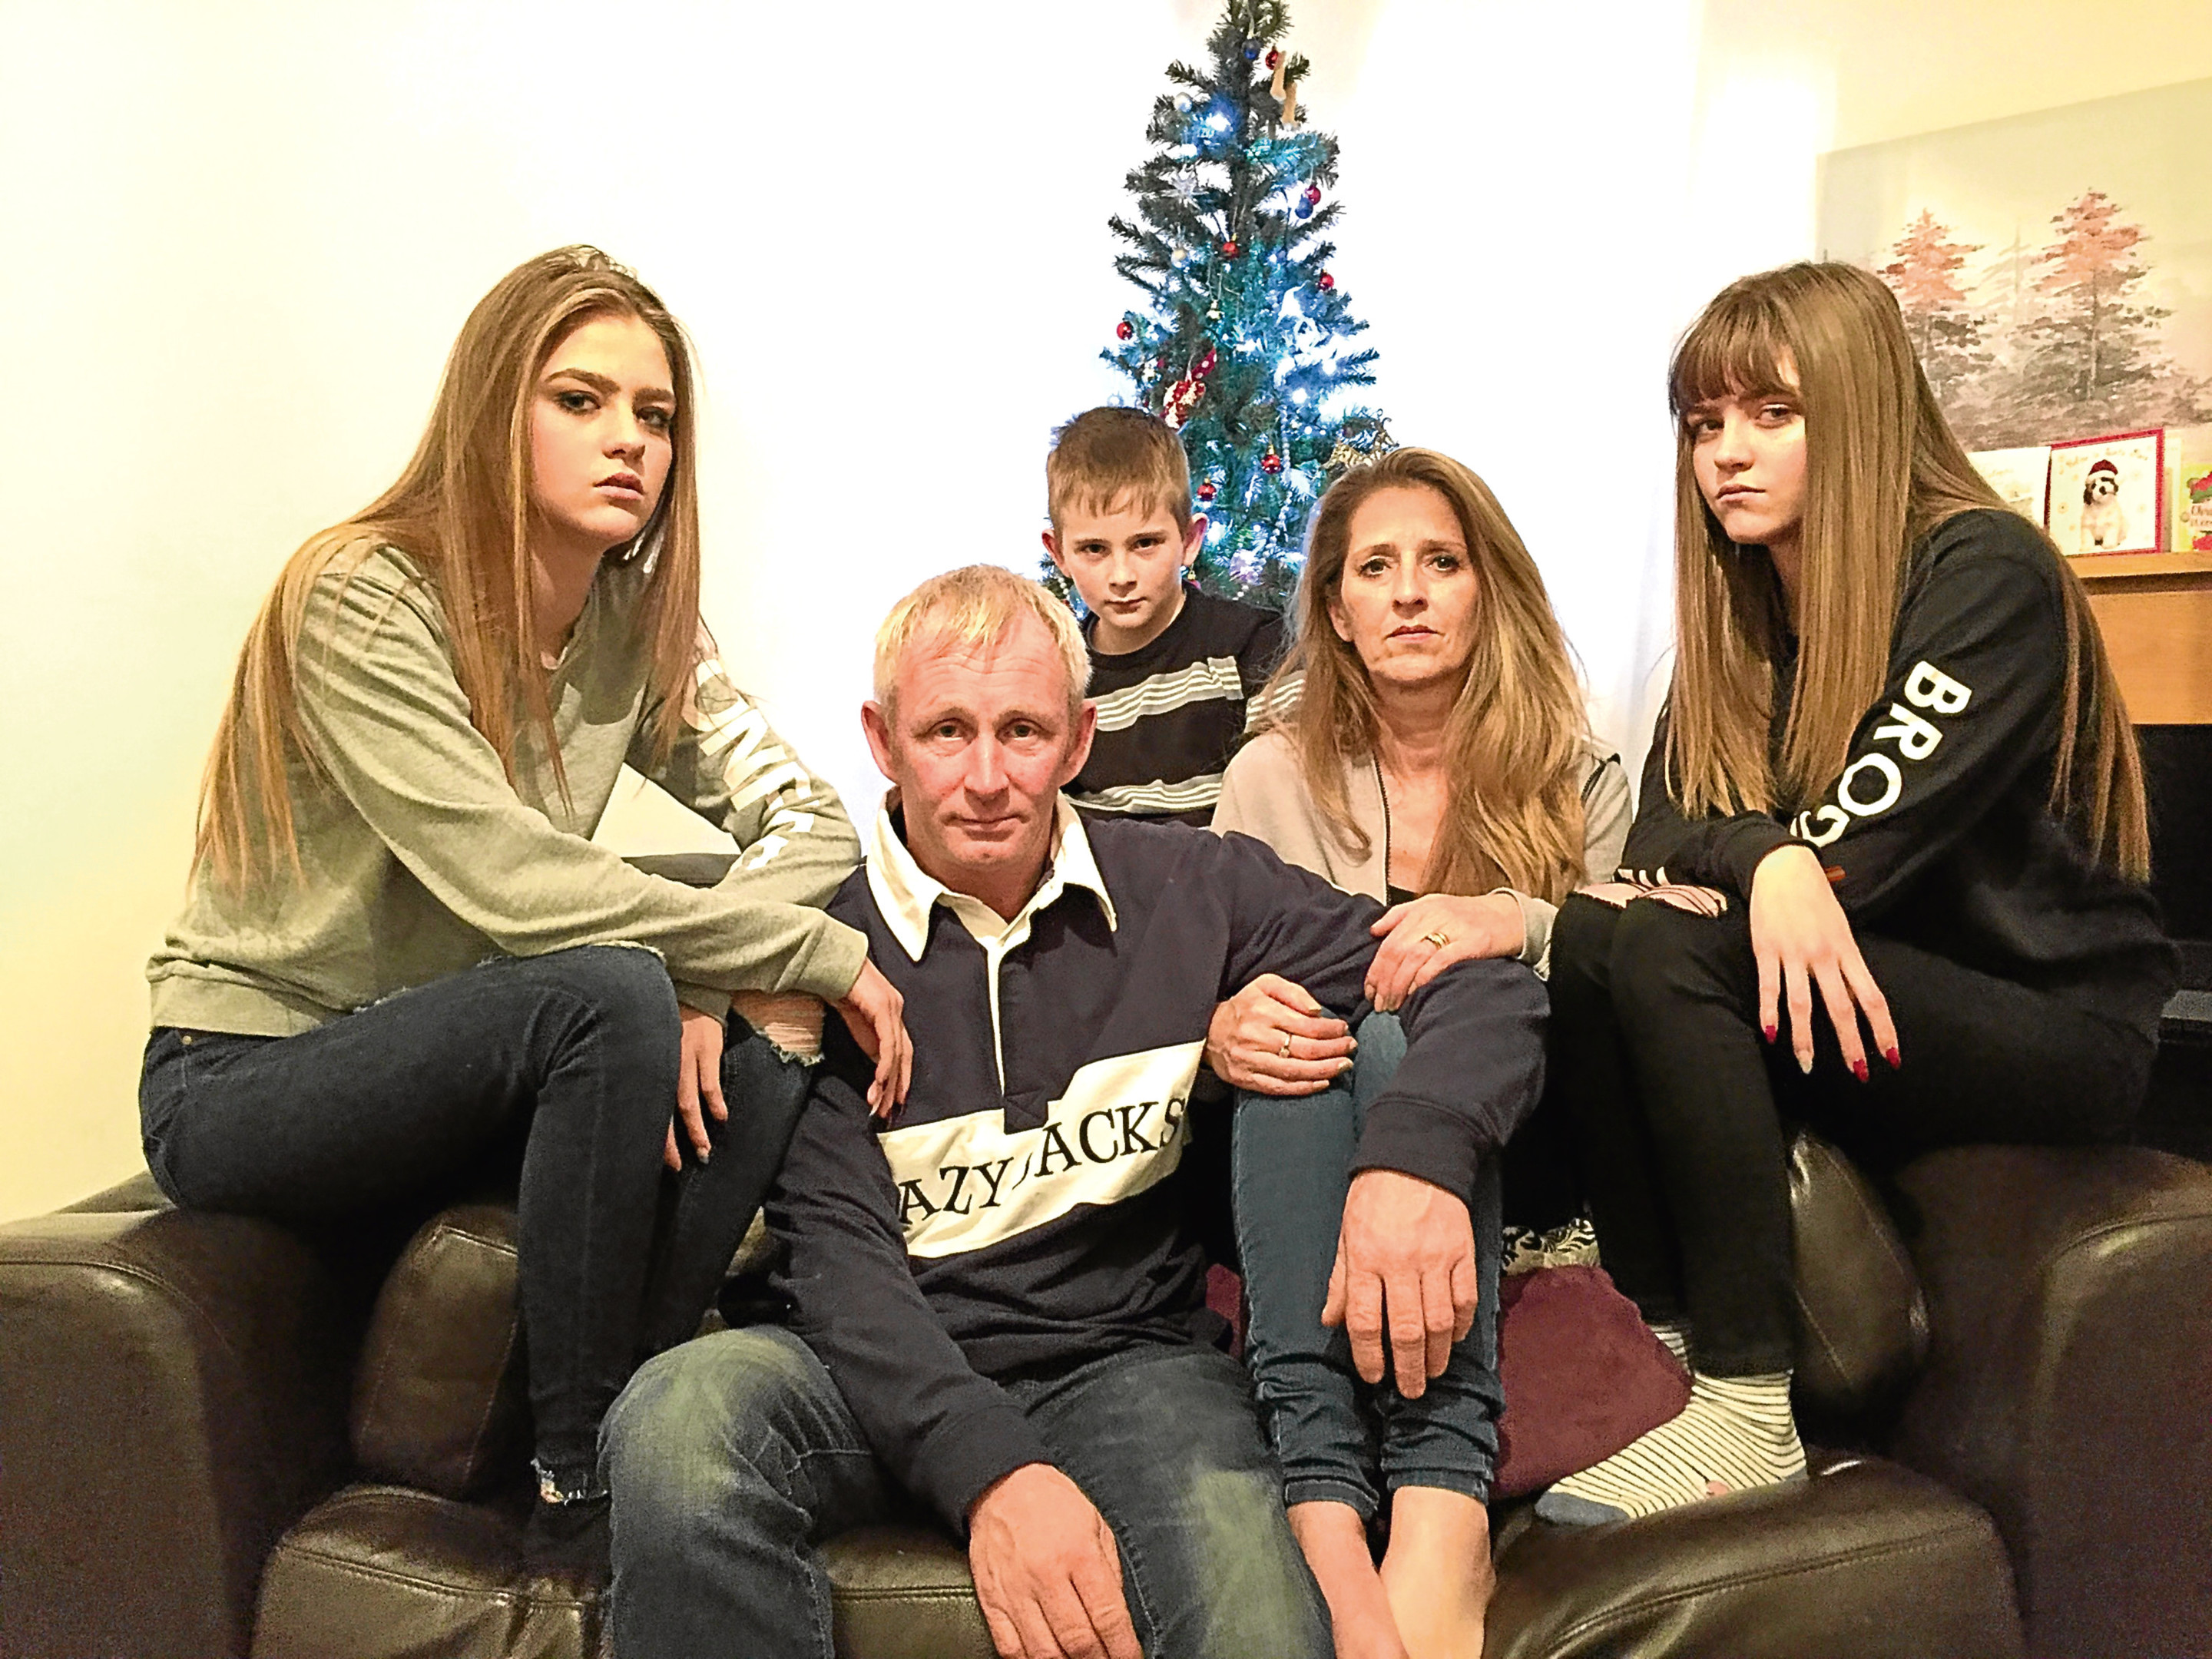 Joe Whitelaw and his family, who had their Christmas Day ruined by The Outside Inn restaurant (Andrew Cawley / DC Thomson)